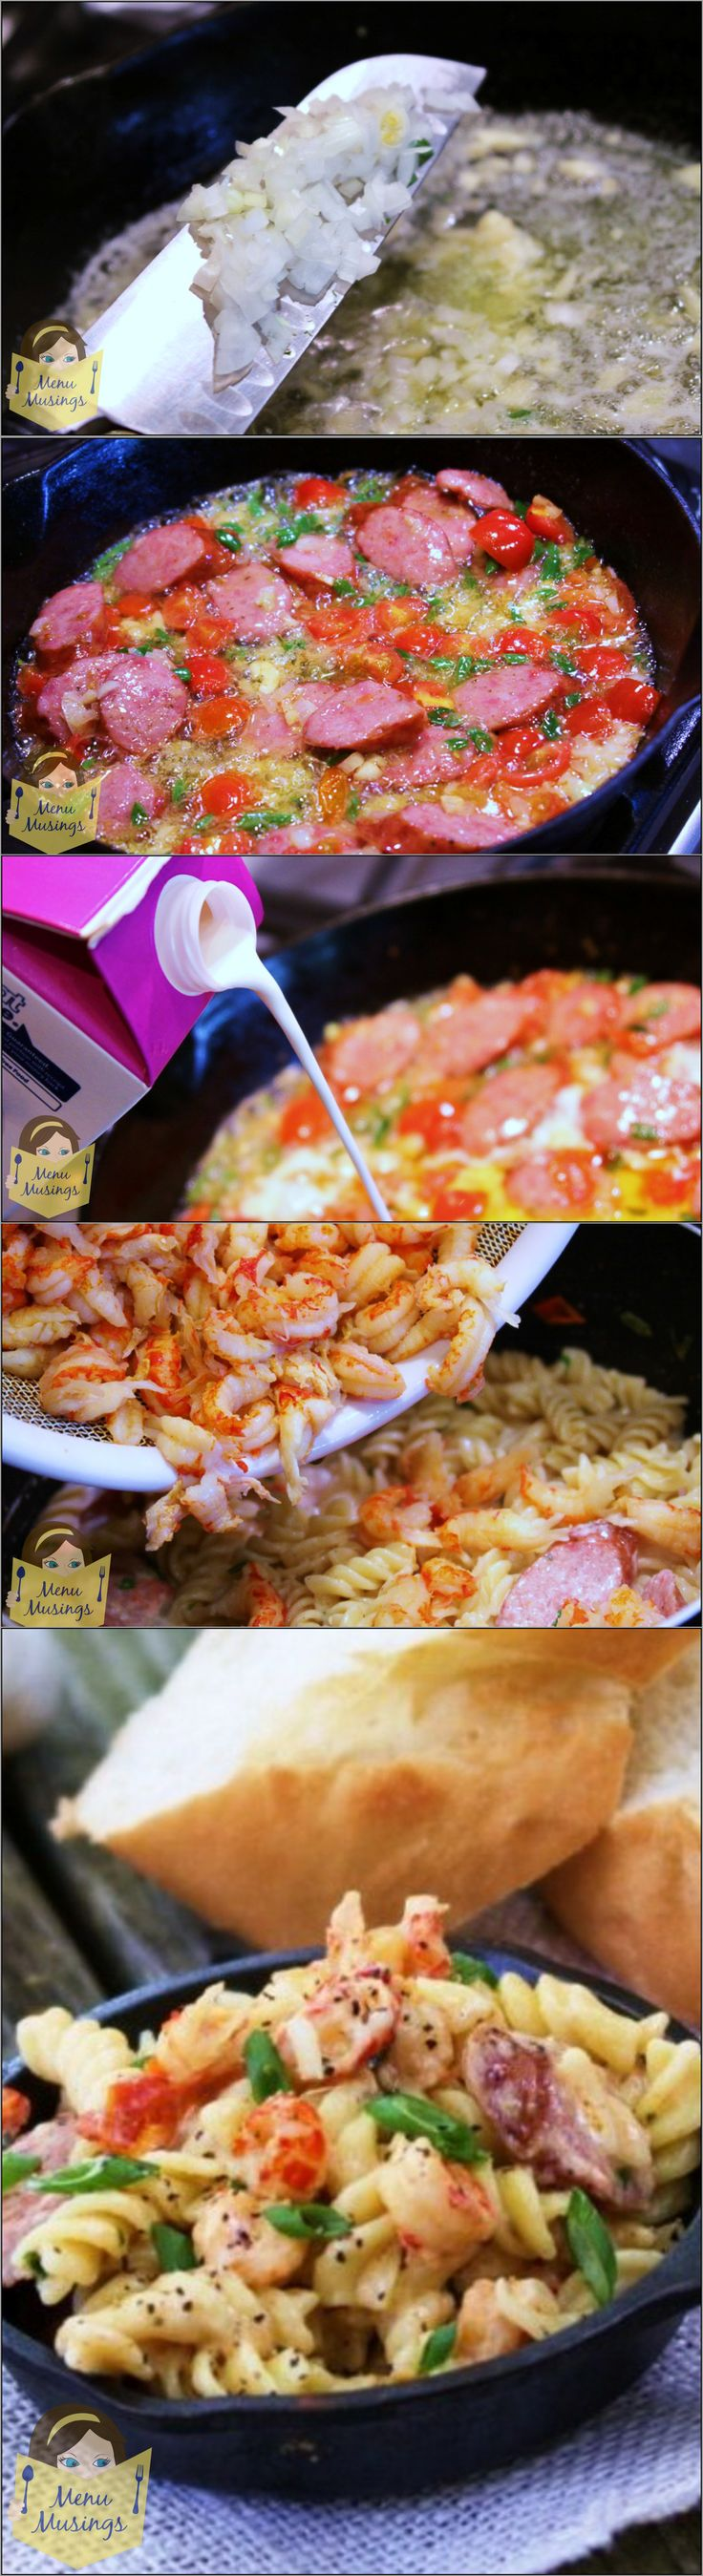 "Crawfish Monica - ""our favorite dish from the New Orleans Jazz Fest in a step-by-step ""make at home"" version! It's creamy, spicy as you want it to be, and way jazzy!"" : menumusings"